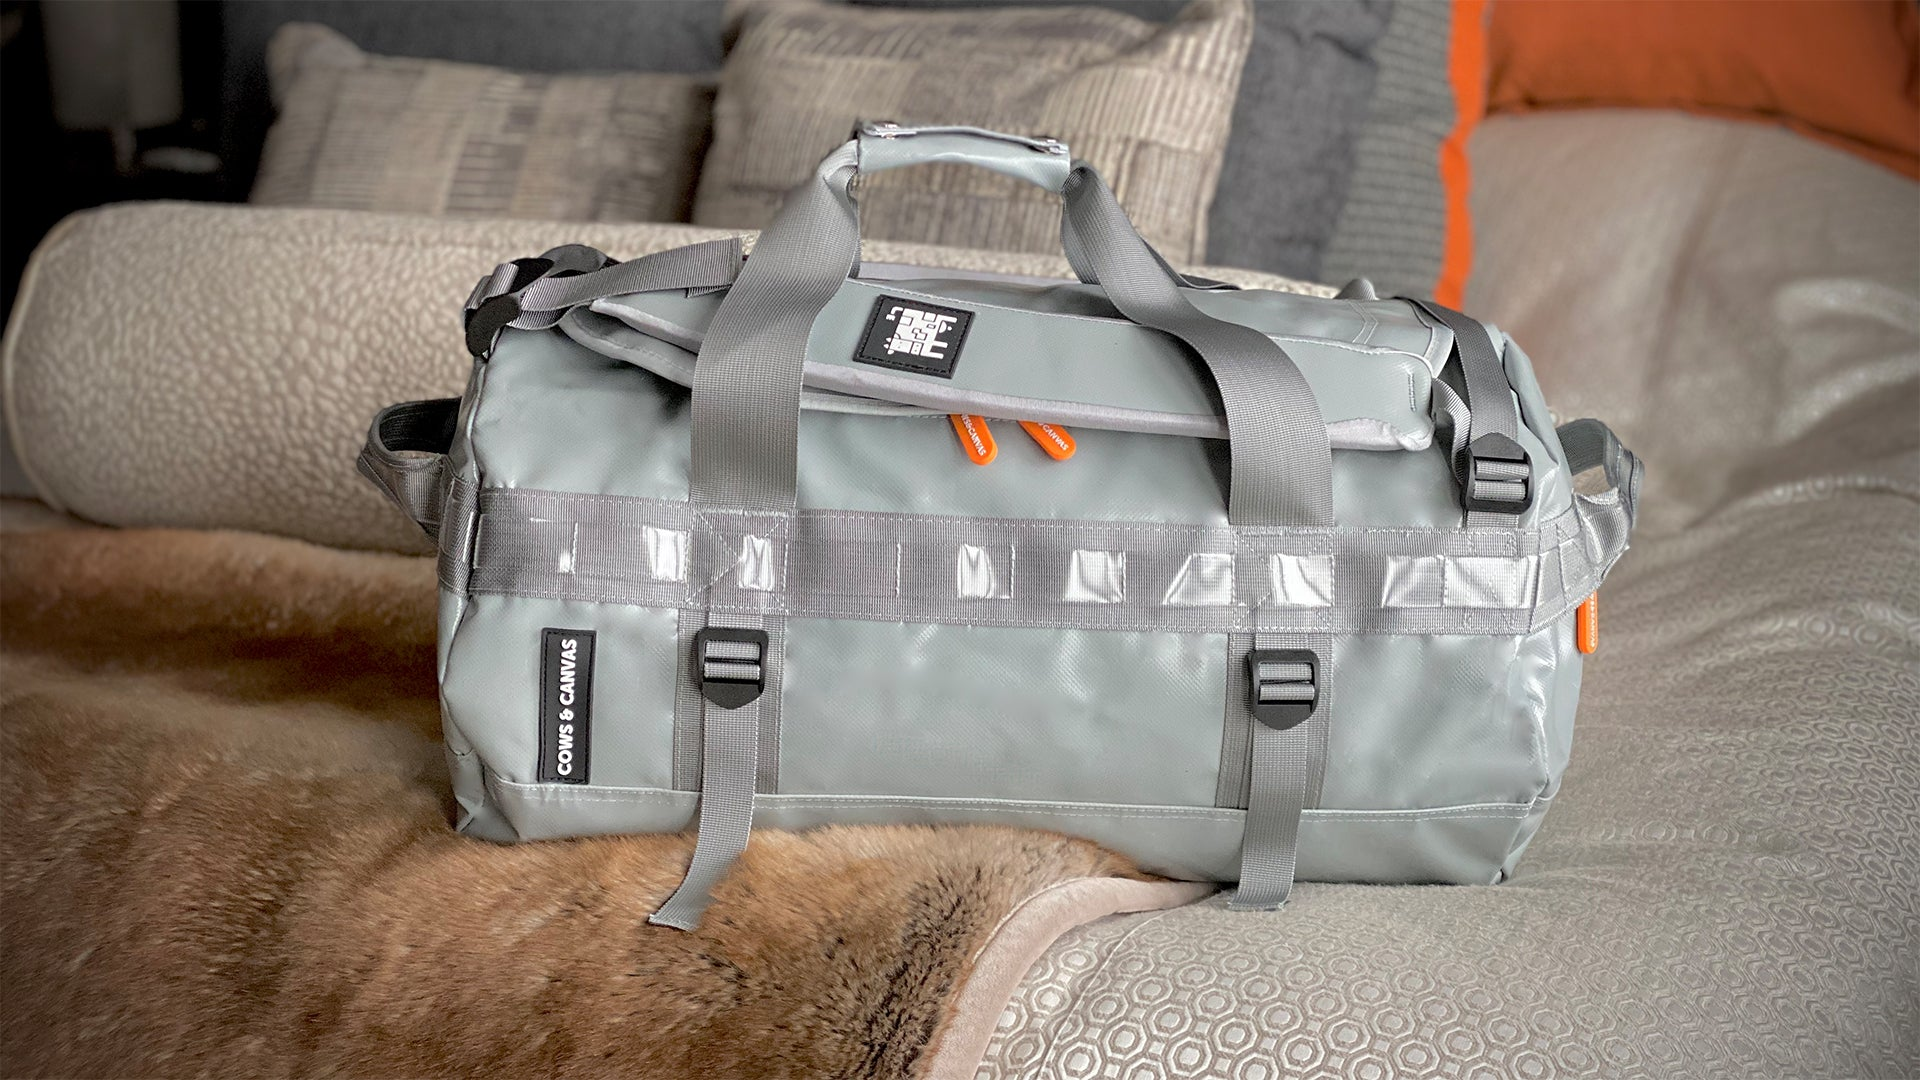 Grey Venture Bag laying on bed showing zippers and carrying straps